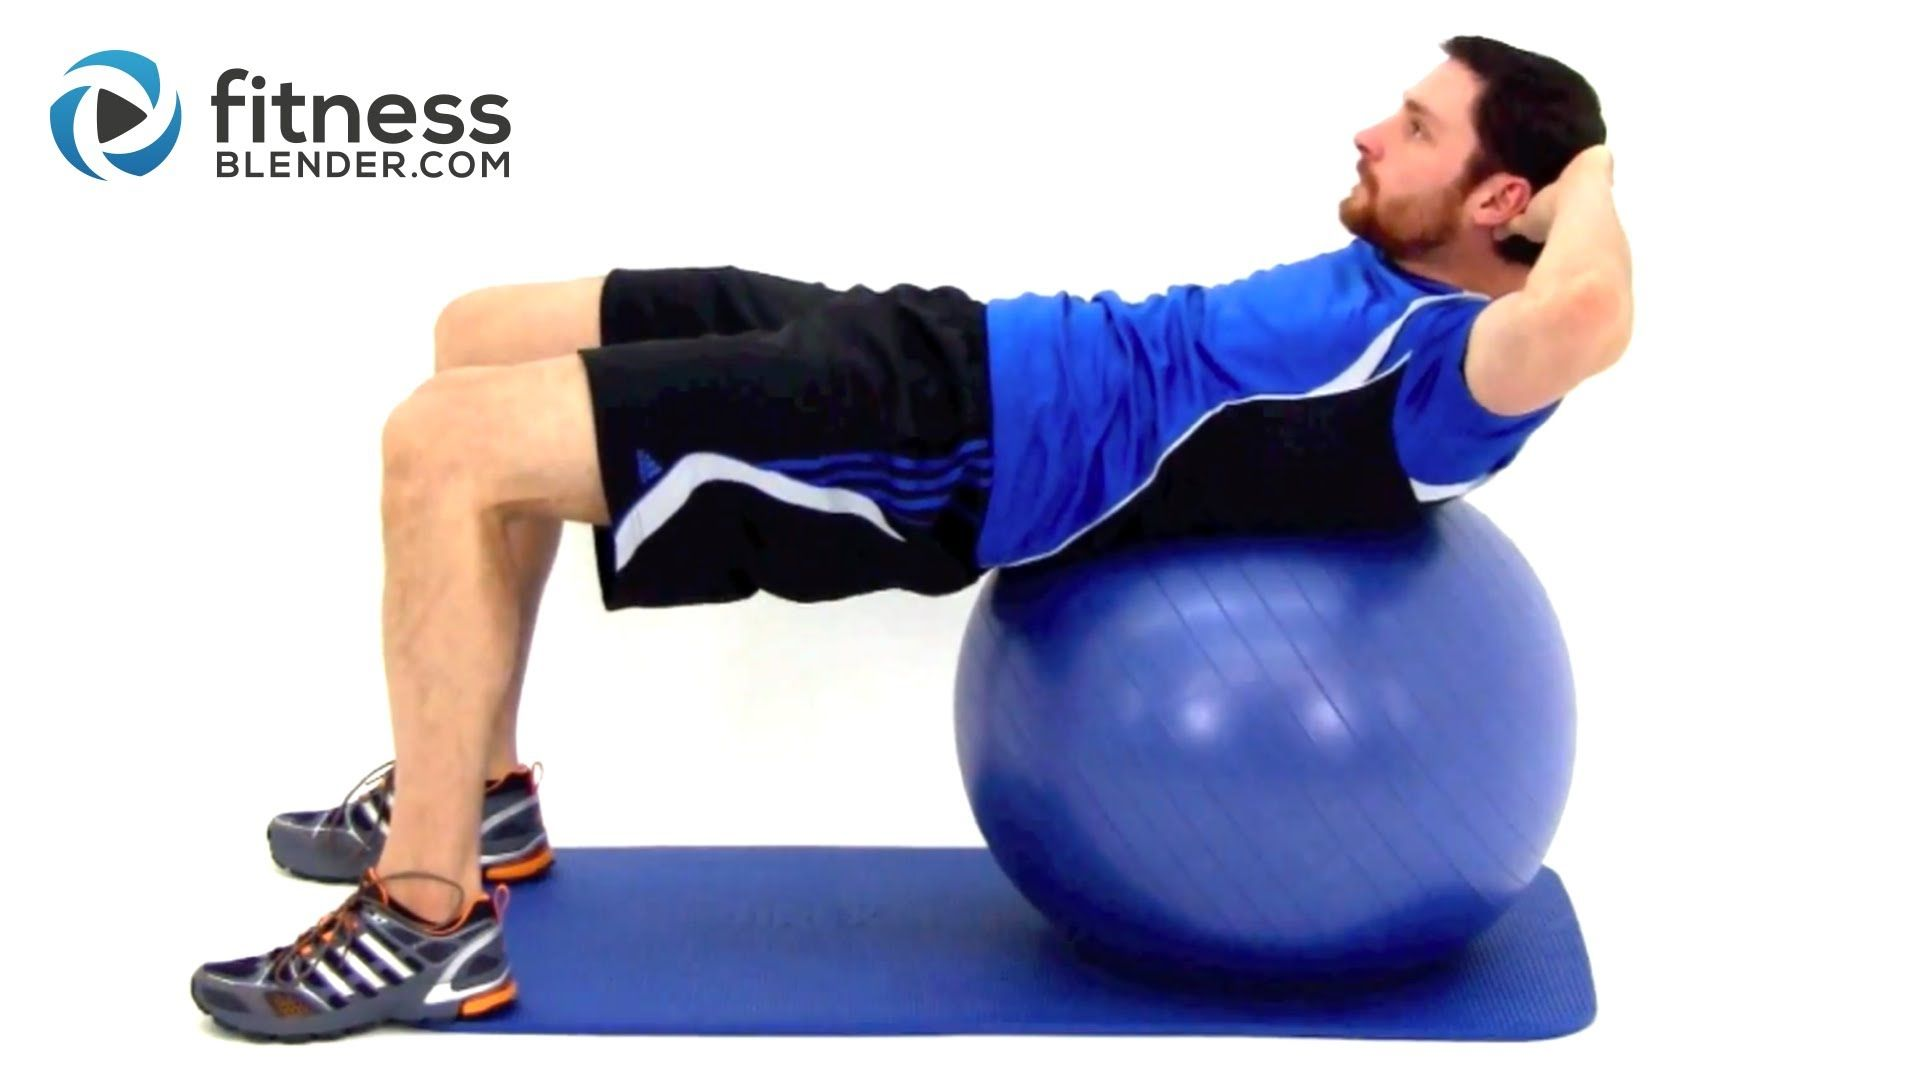 Challenging Exercise Ball Ab Workout - Physioball Workout for the Core #exerciseball